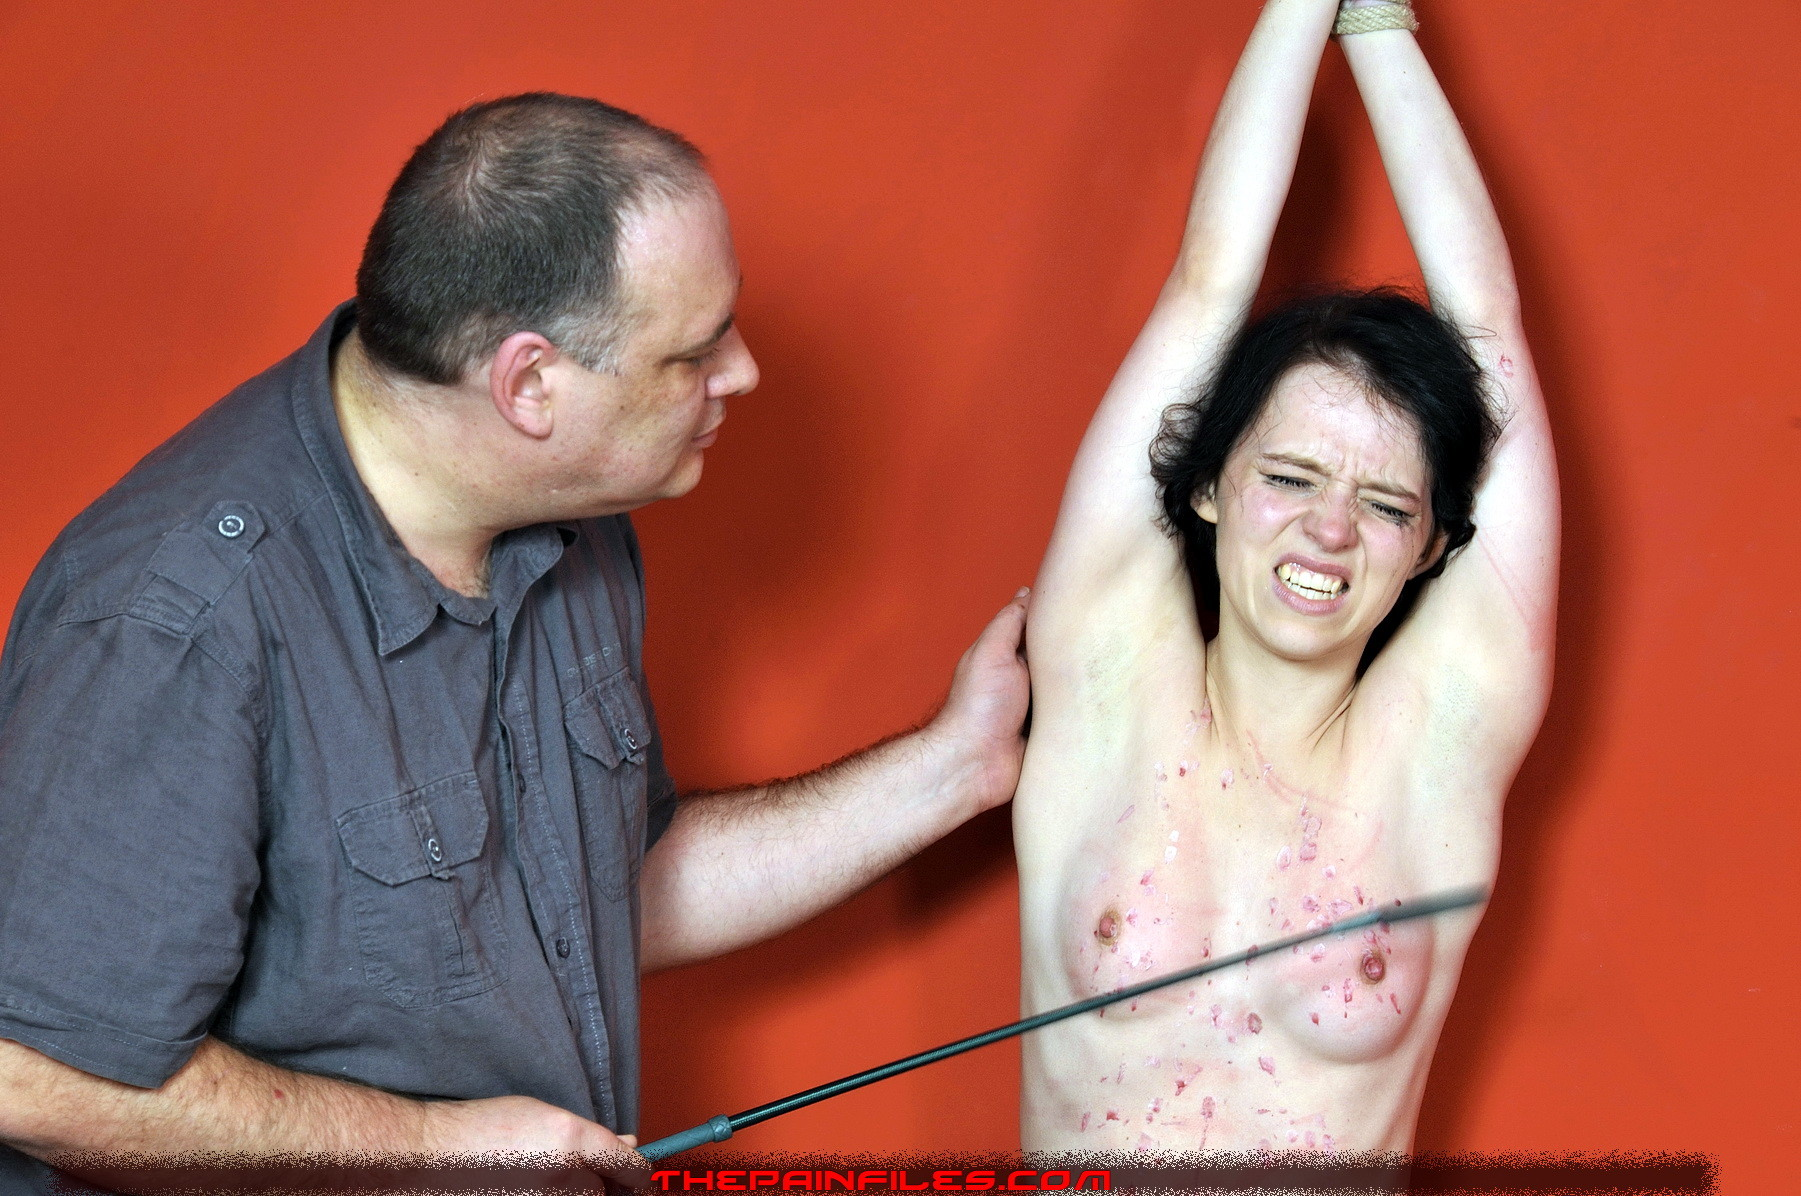 Manager recomended tit torture whipping